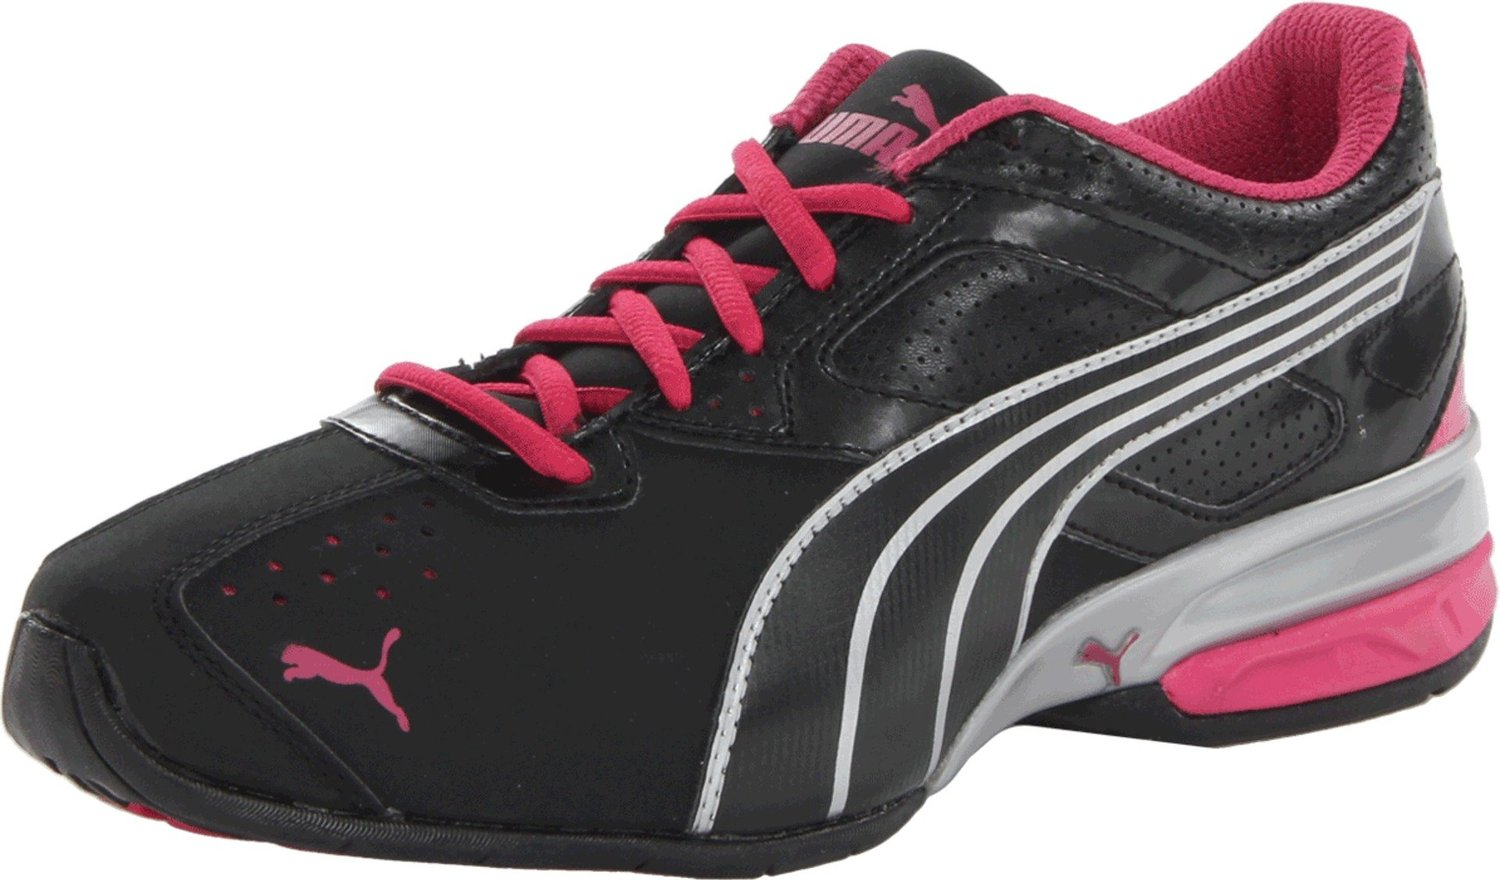 PUMA Tazon 5 Cross-Training Shoe BlackSilverBeetrootPurple 02560390f